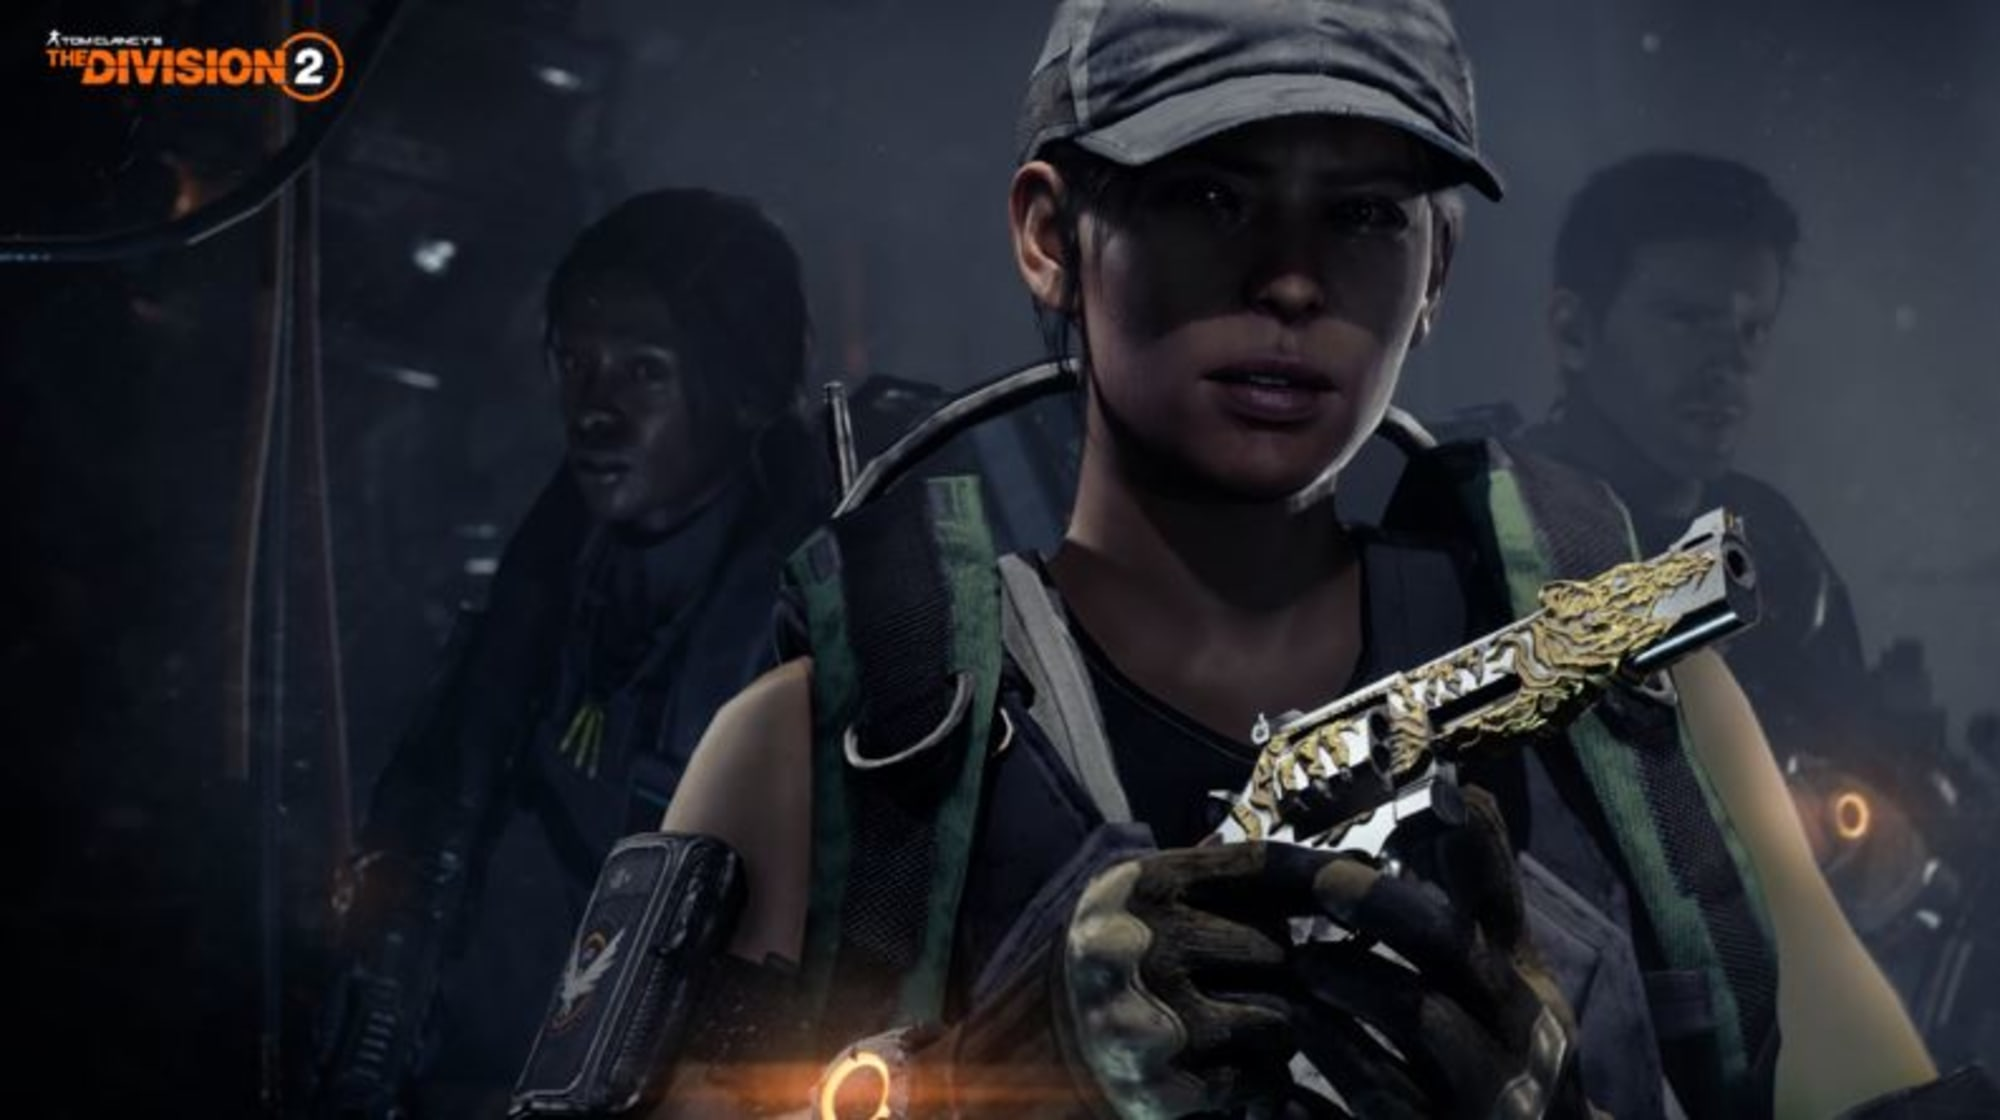 The Division Heartland: What we now know about Ubisoft's free-to-play game